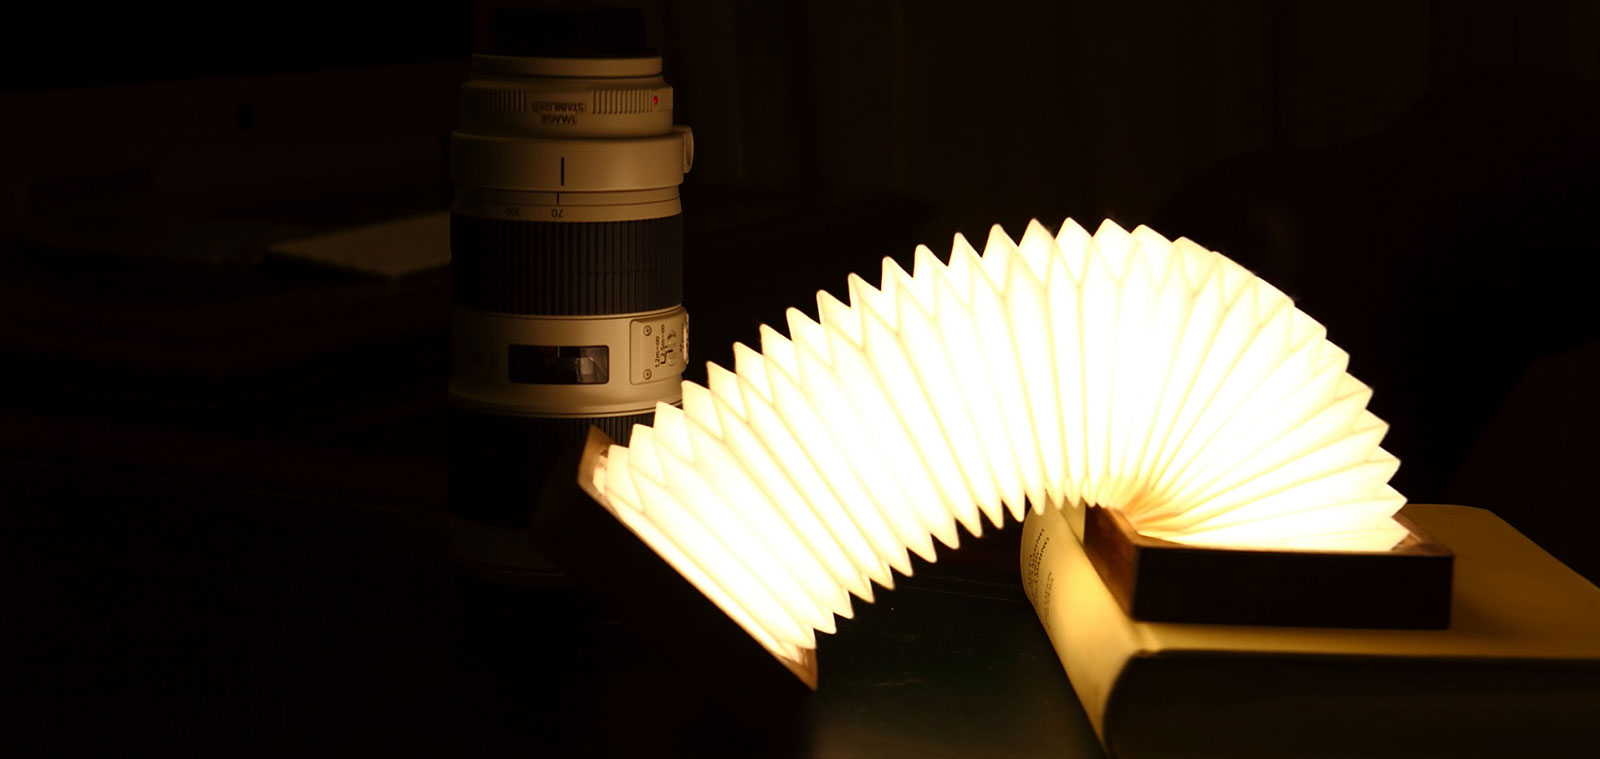 Orilamp-Origami-Inspired-Smart-Lamp-with-app